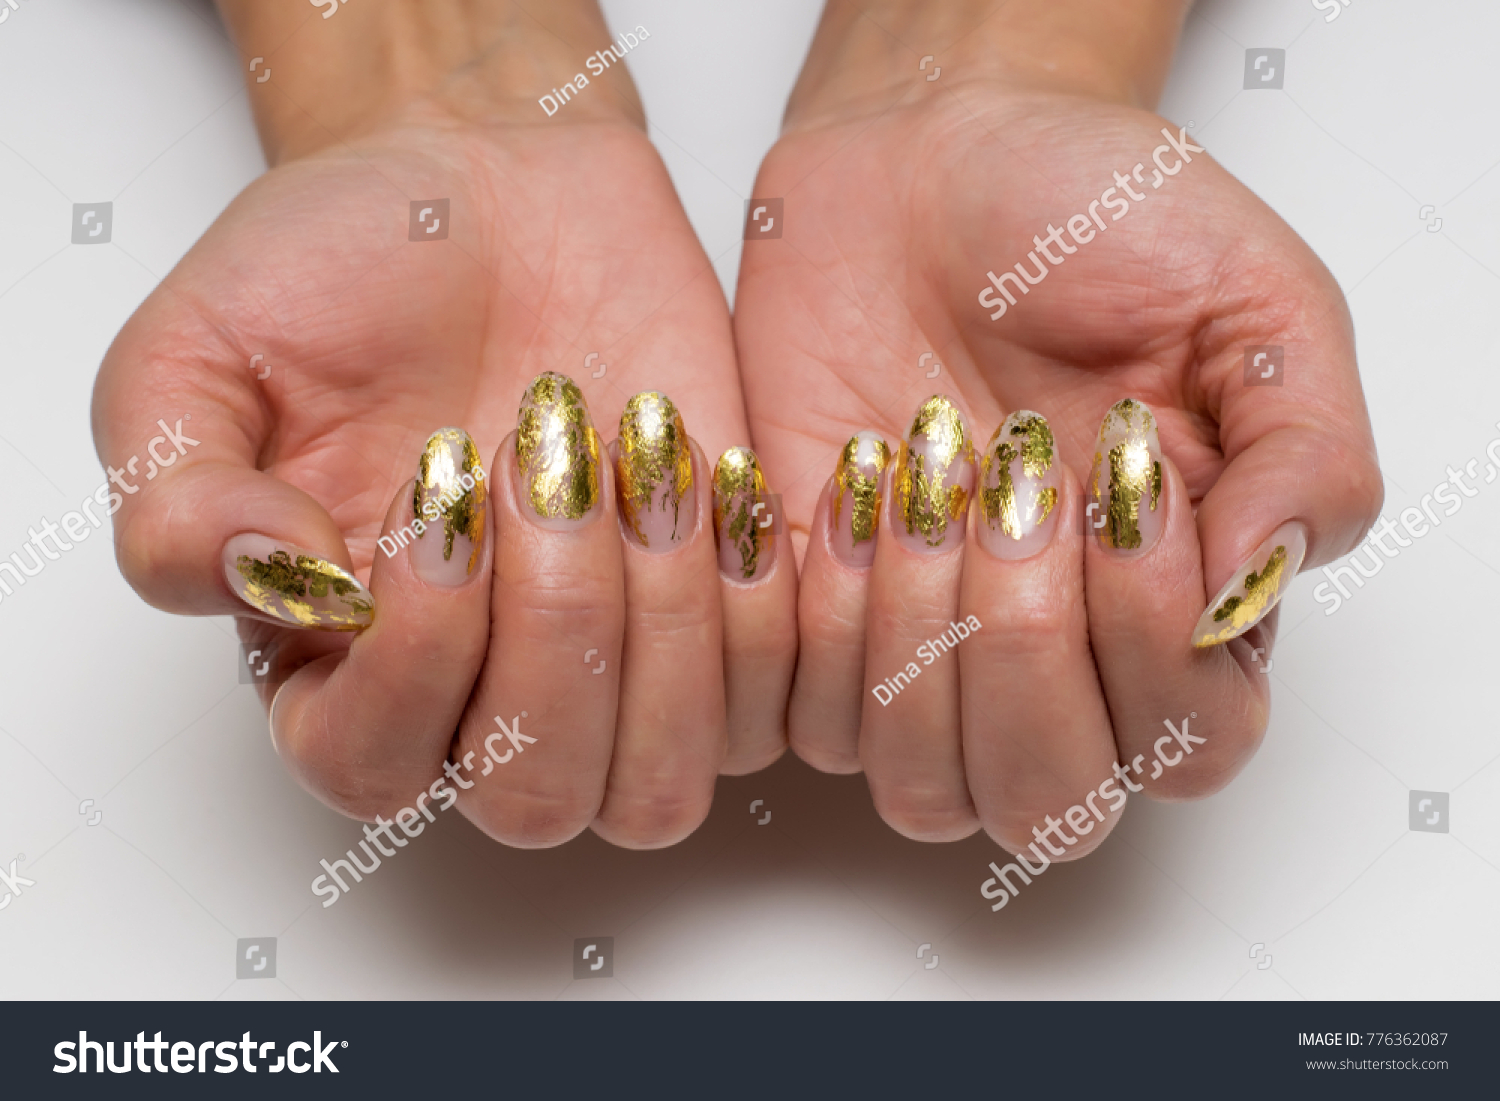 Gold Manicure On Long Oval Nails Stock Photo (Royalty Free ...